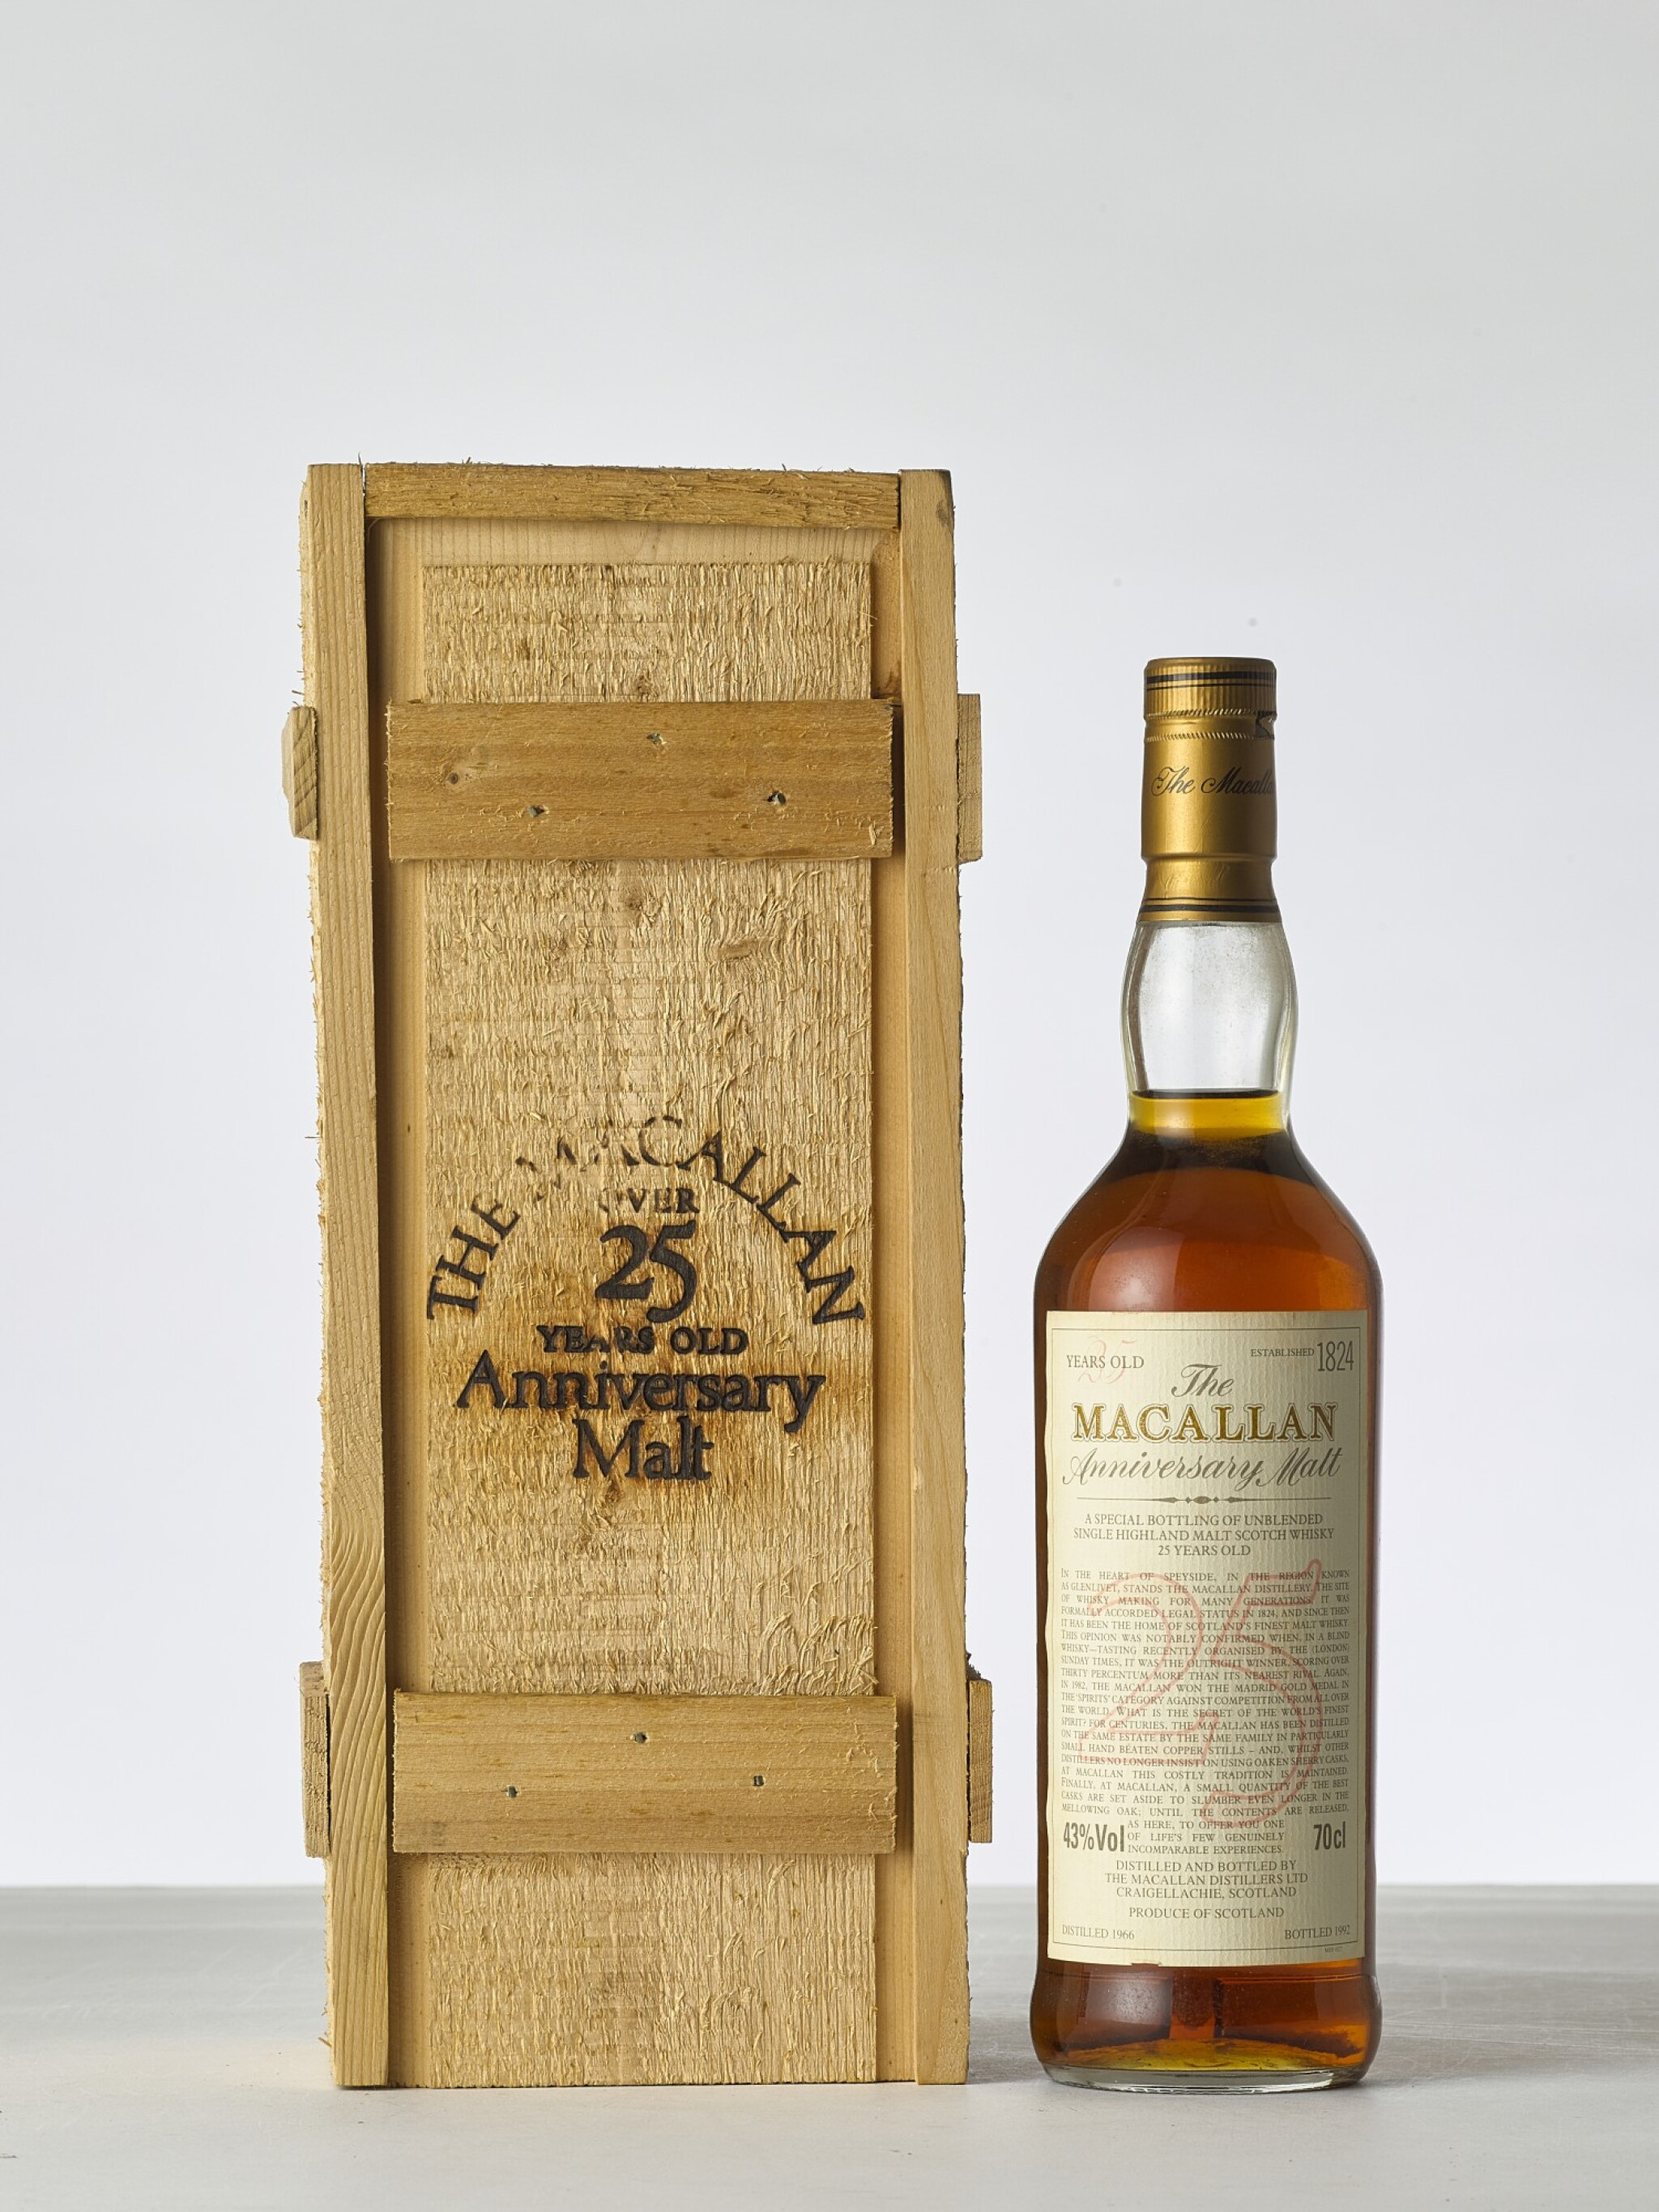 View 1 of Lot 2010. The Macallan 25 Year Old Anniversary Malt 43.0 abv 1966 (1 BT70).